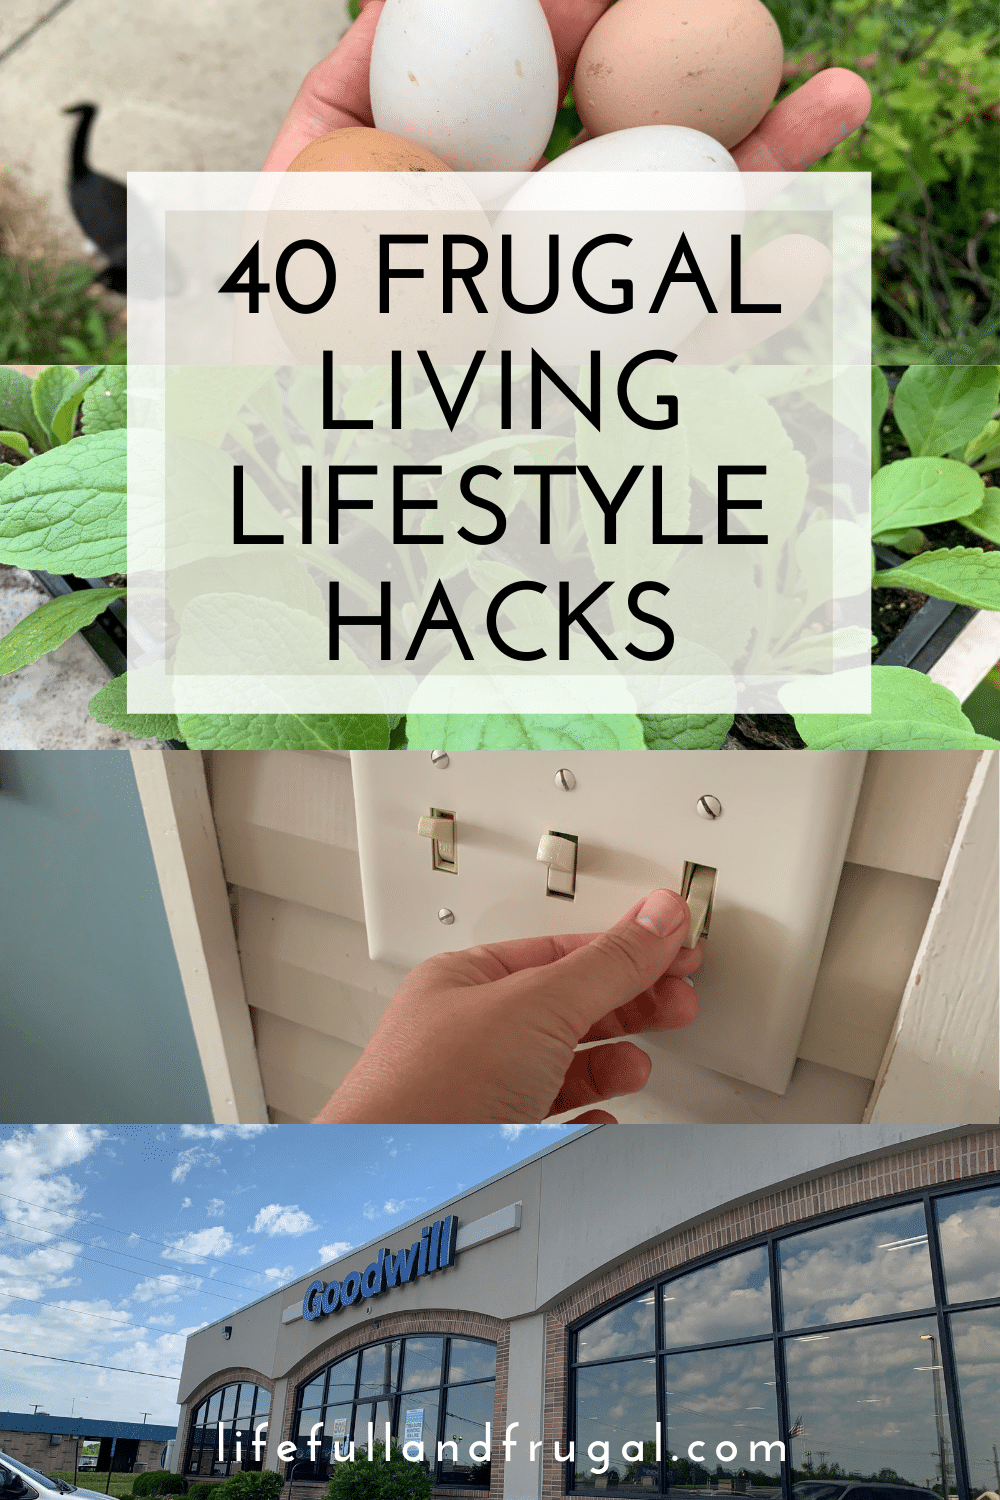 40 frugal living lifestyle hacks life full and frugal